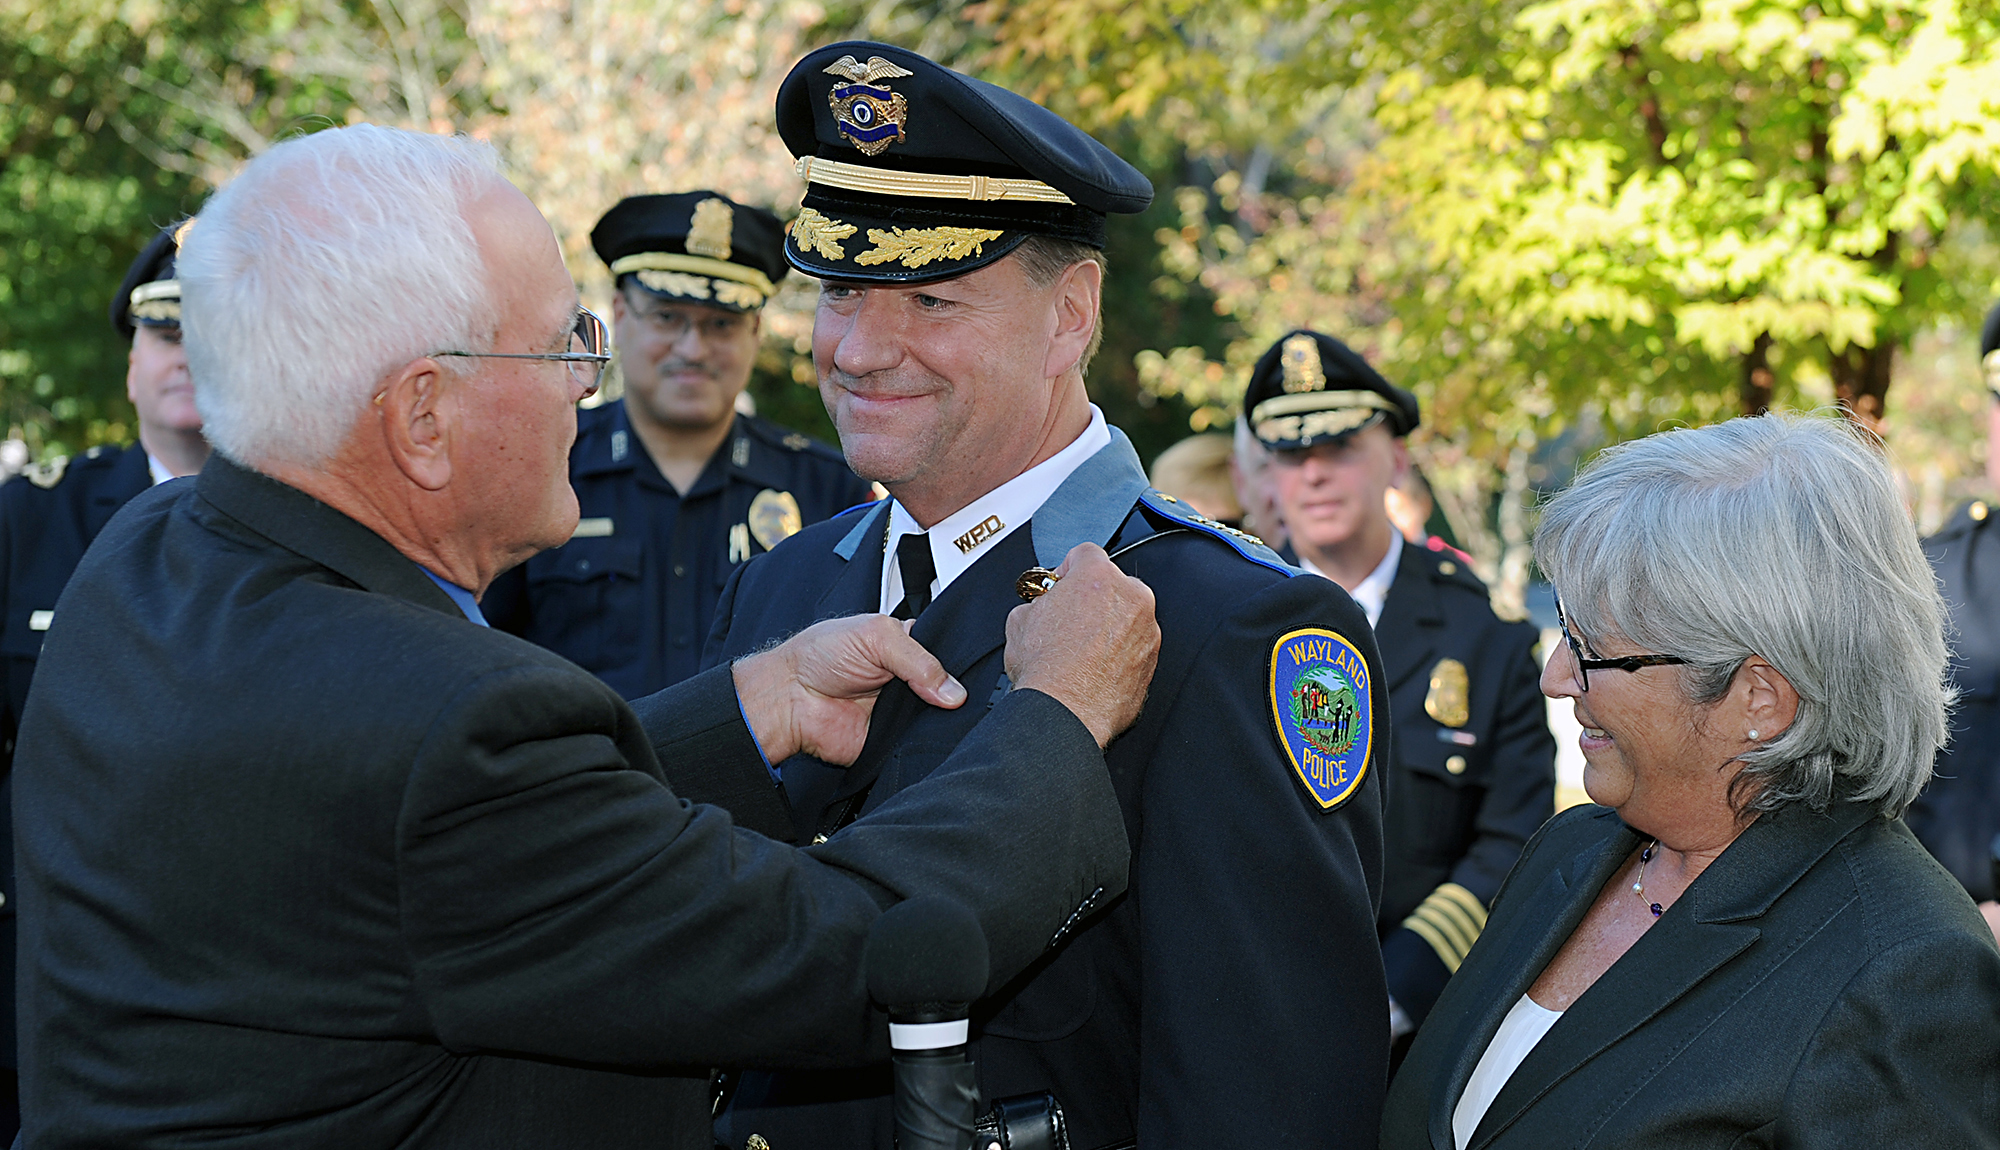 10/2/17-- WAYLAND-- Newly sworn in Wayland Police Chief Patrick J. Swanick has his badge pinned on by retired  Wayland police Sgt. Bob Parker Monday afternoon outside the Wayland Public Safety Building. At right is Swanick's wife, Heidi. [Daily News and Wicked Local Staff Photo/Art Illman]